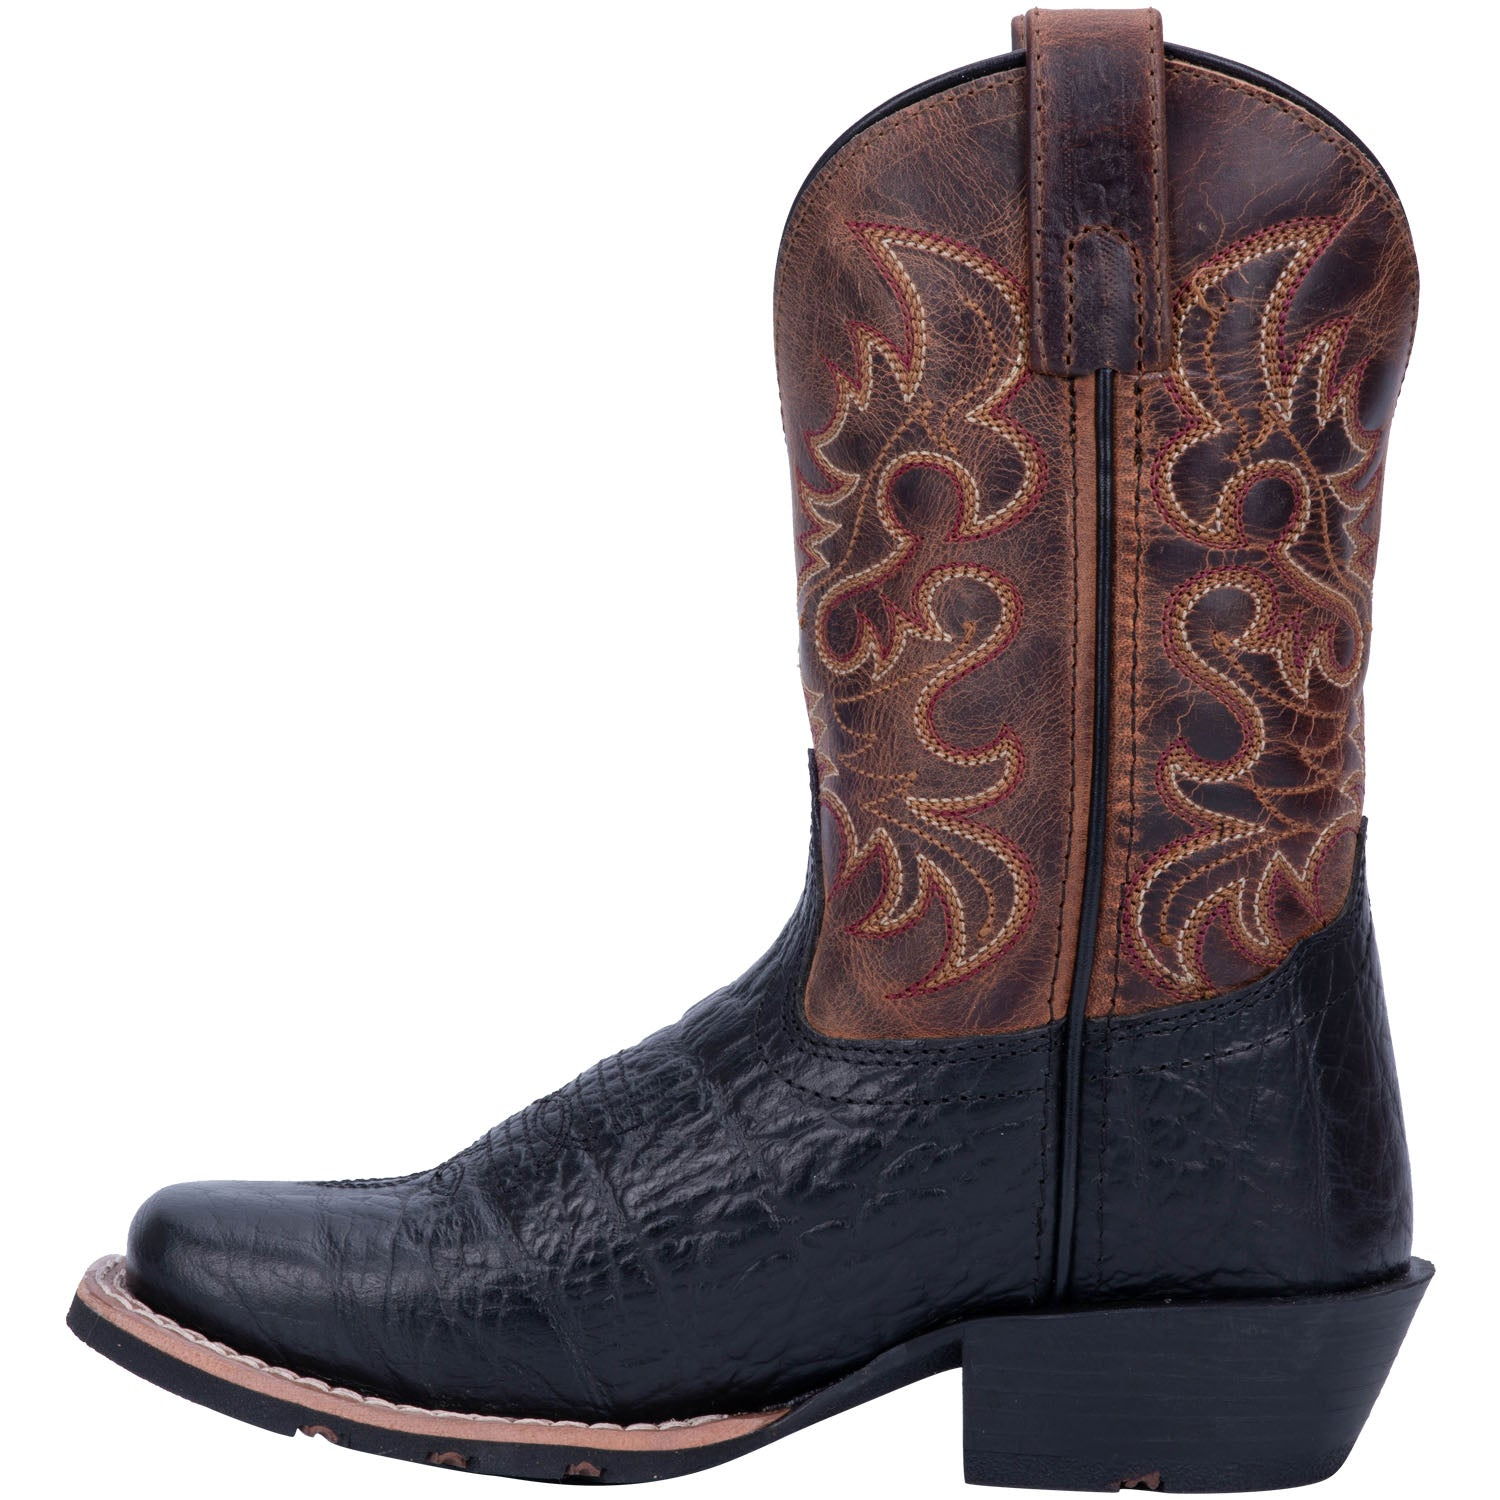 LITTLE RIVER LEATHER YOUTH BOOT